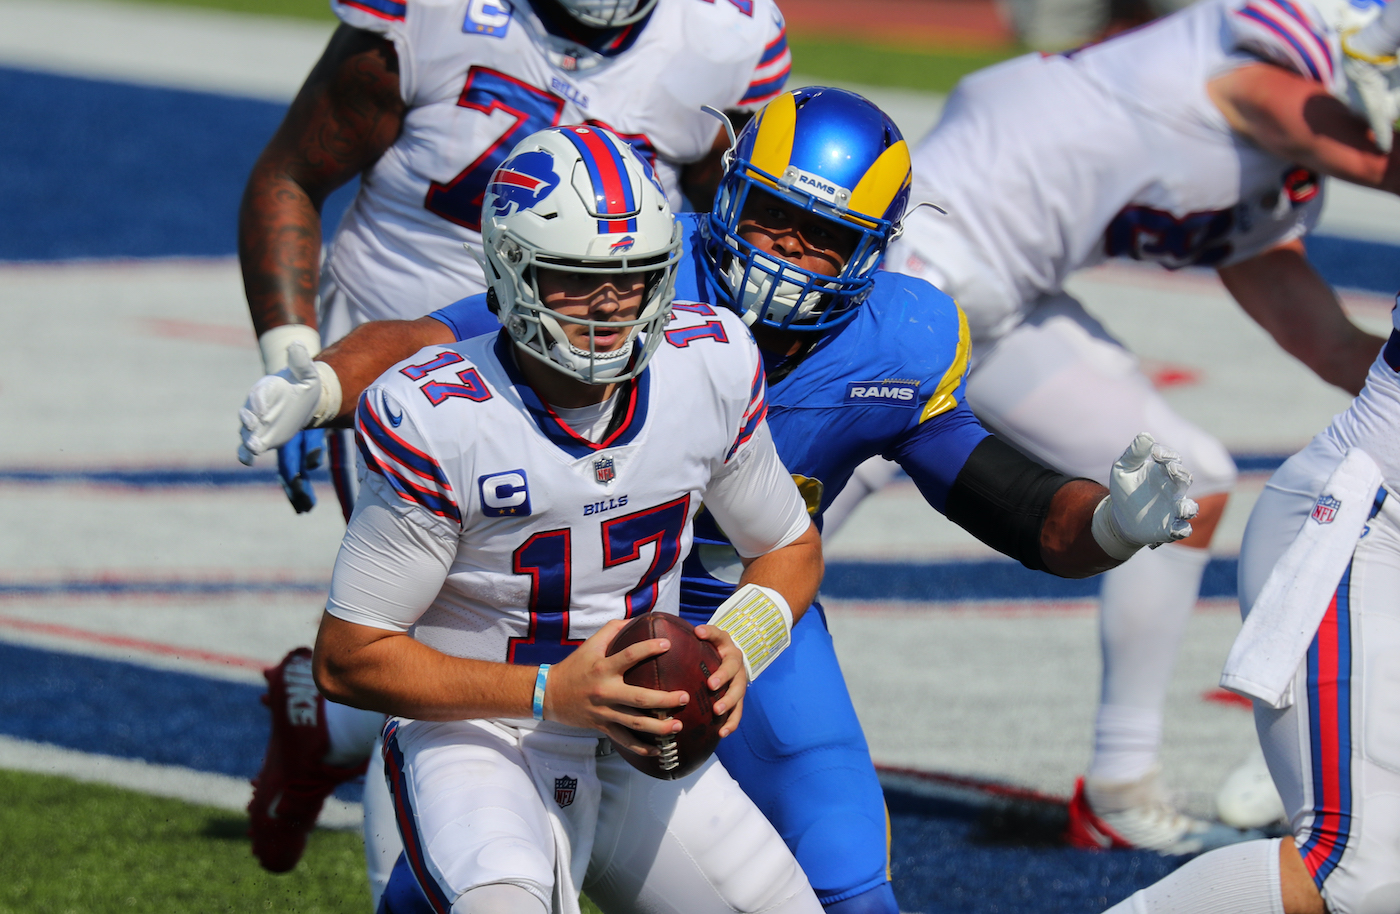 ORCHARD PARK, NY - SEPTEMBER 27: Josh Allen #17 of the Buffalo Bills looks to throw a pass and gets tackled by Aaron Donald #99 of the Los Angeles Rams during the second half at Bills Stadium on September 27, 2020 in Orchard Park, New York. Bills beat the Rams 35 to 32. (Photo by Timothy T Ludwig/Getty Images)